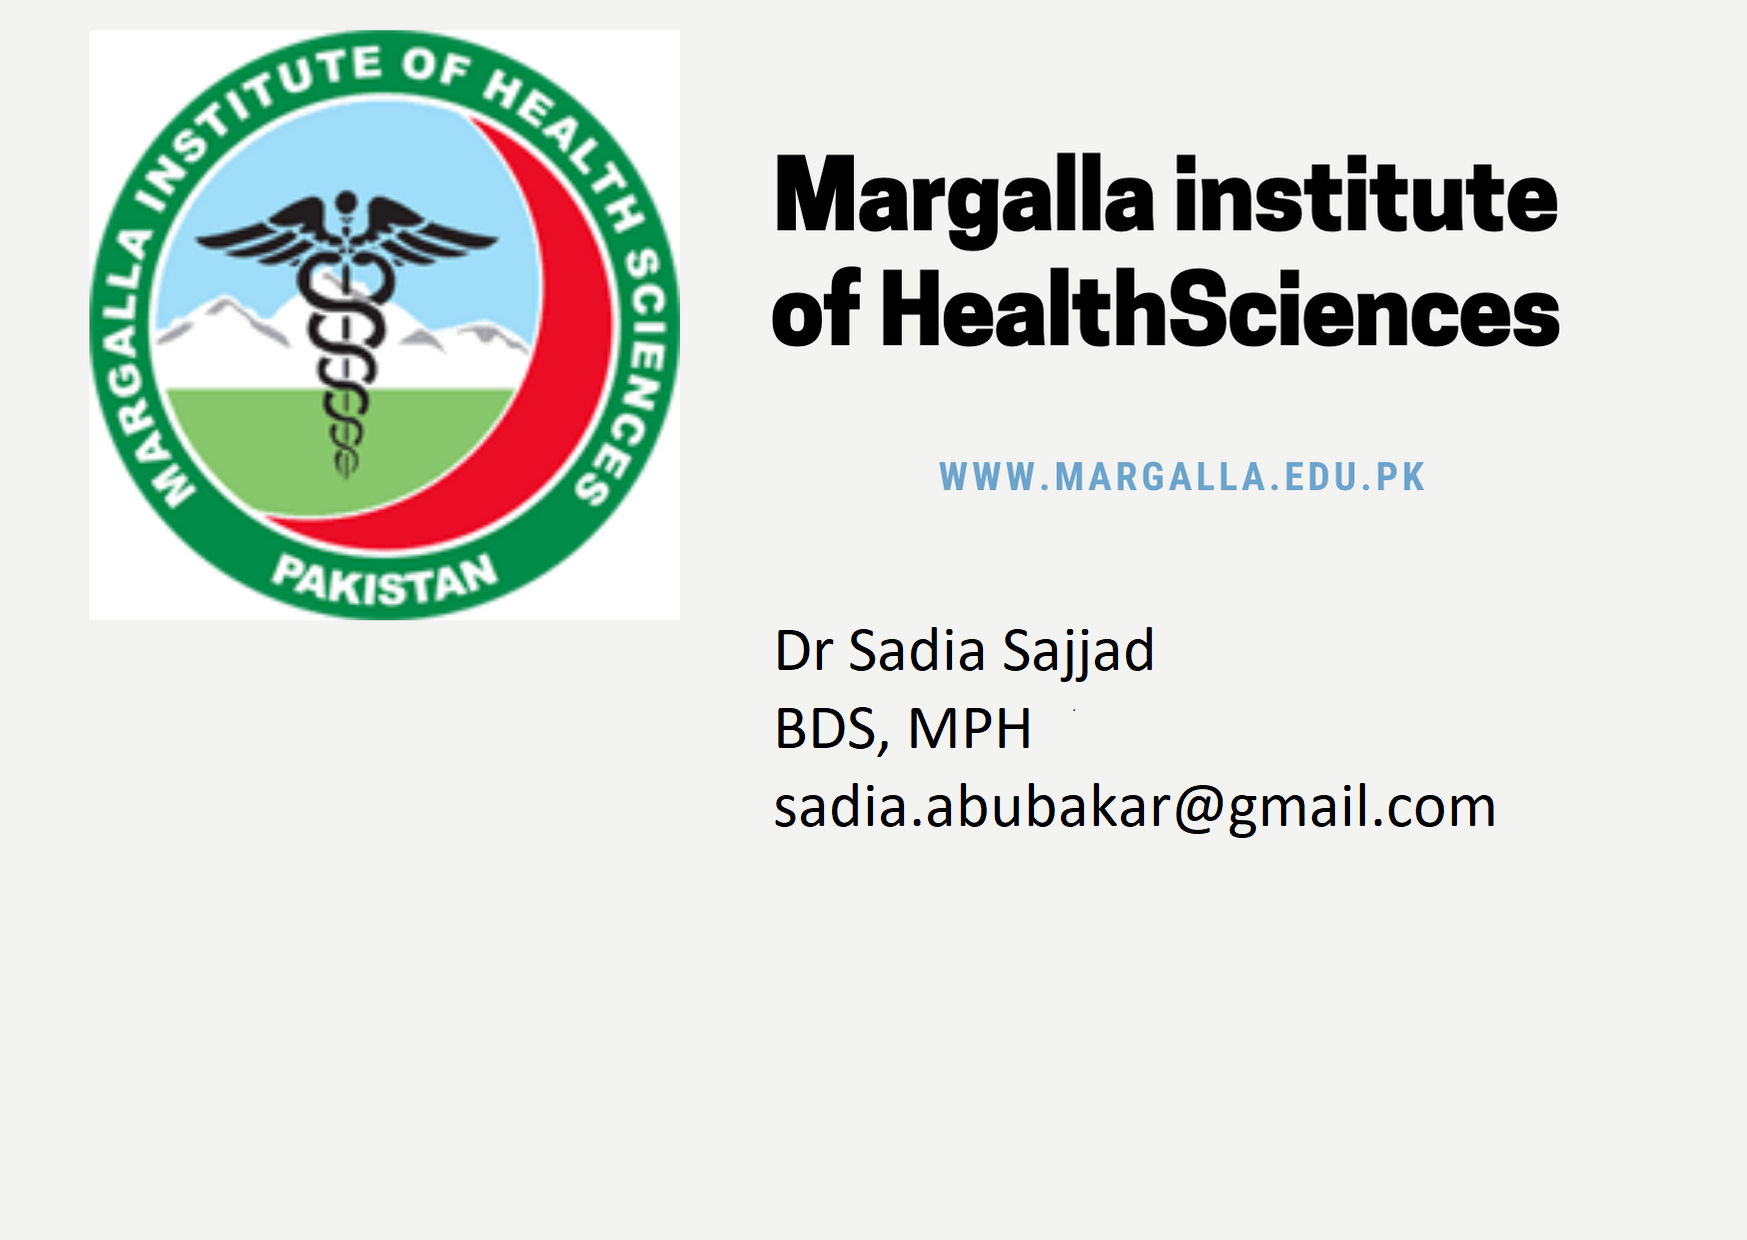 COMMUNITY & PREVENTIVE DENTISTRY DEPARTMENT at MIHS by Dr Sadia Sajjad Assistant Professor/HOD